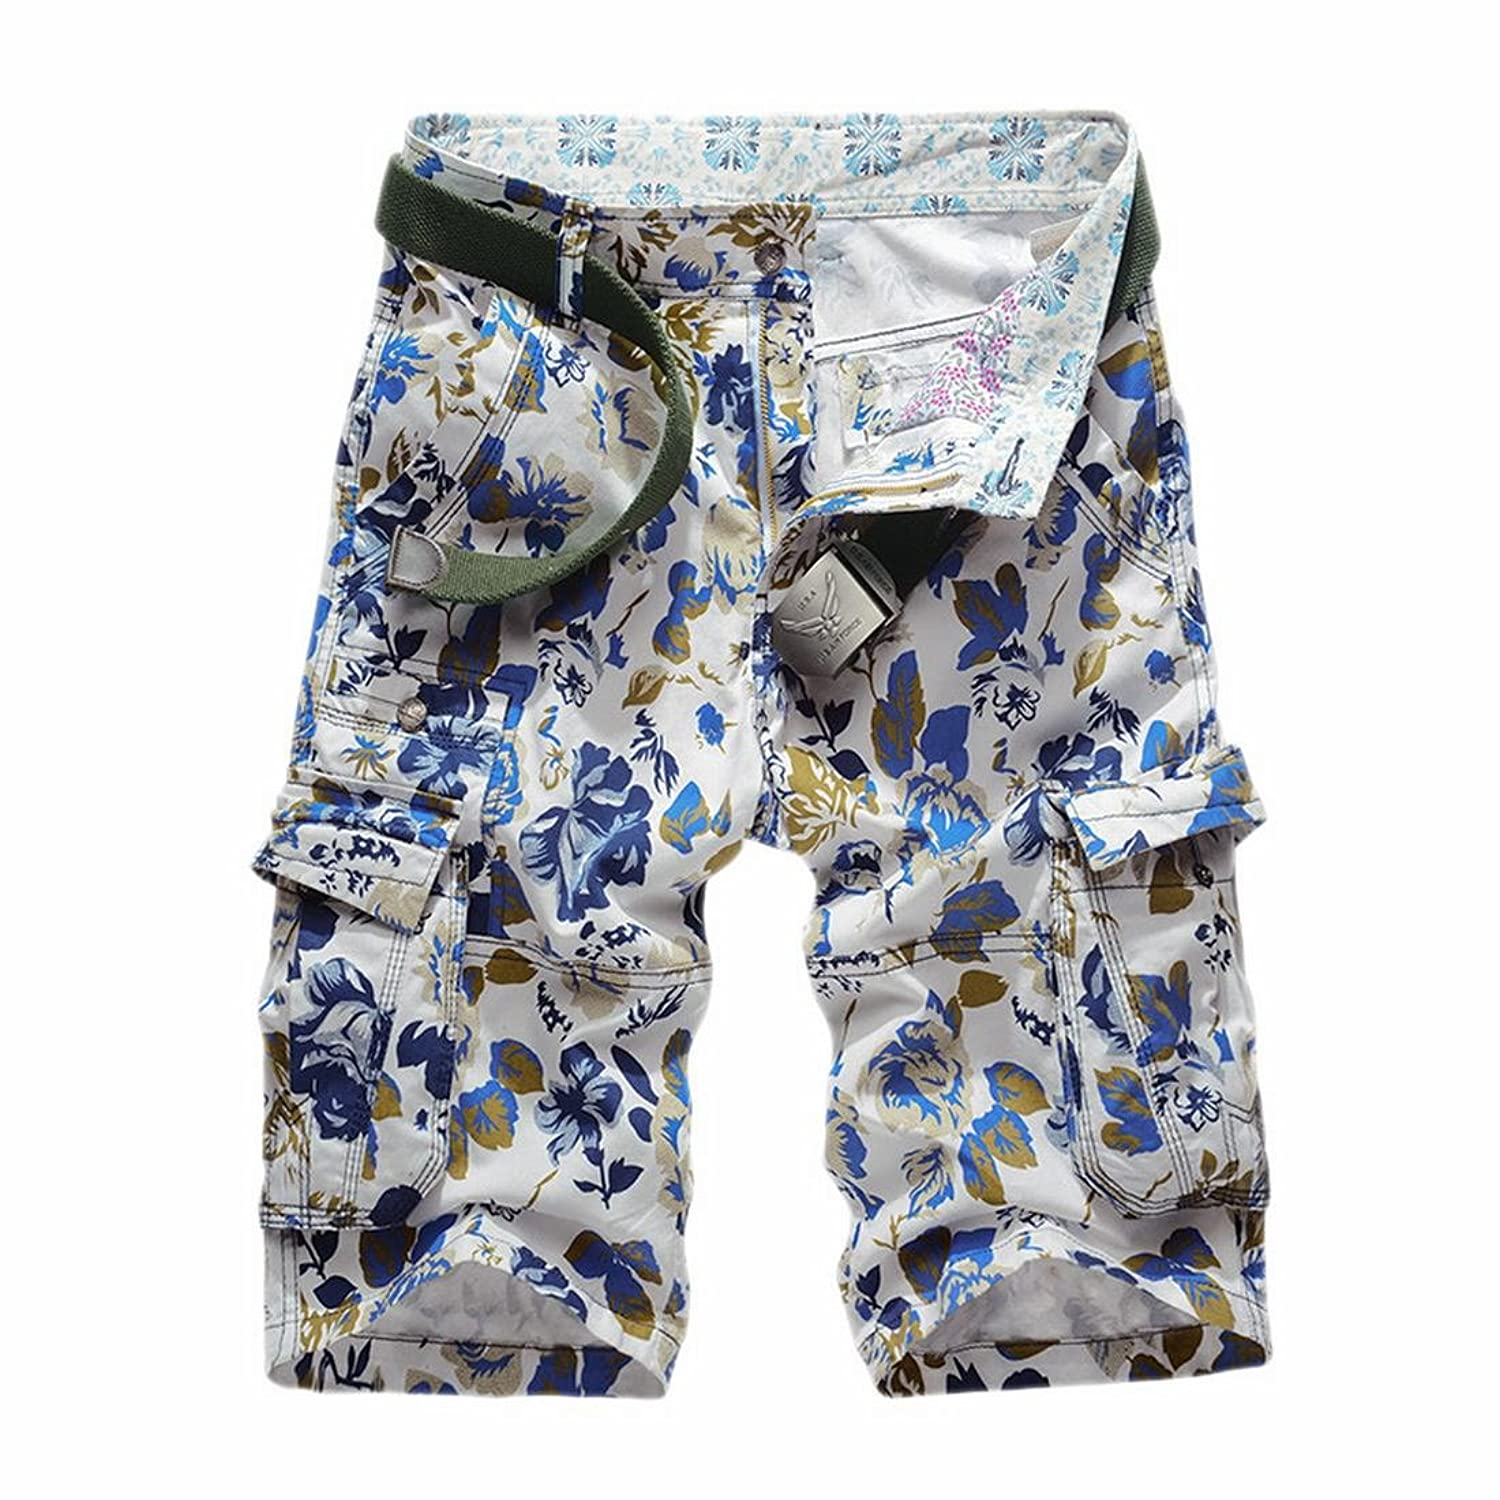 19e263d4774f ARRIVE GUIDE Men s Printed Floral Multi Pocket Camo Cargo Comfy Shorts  lovely